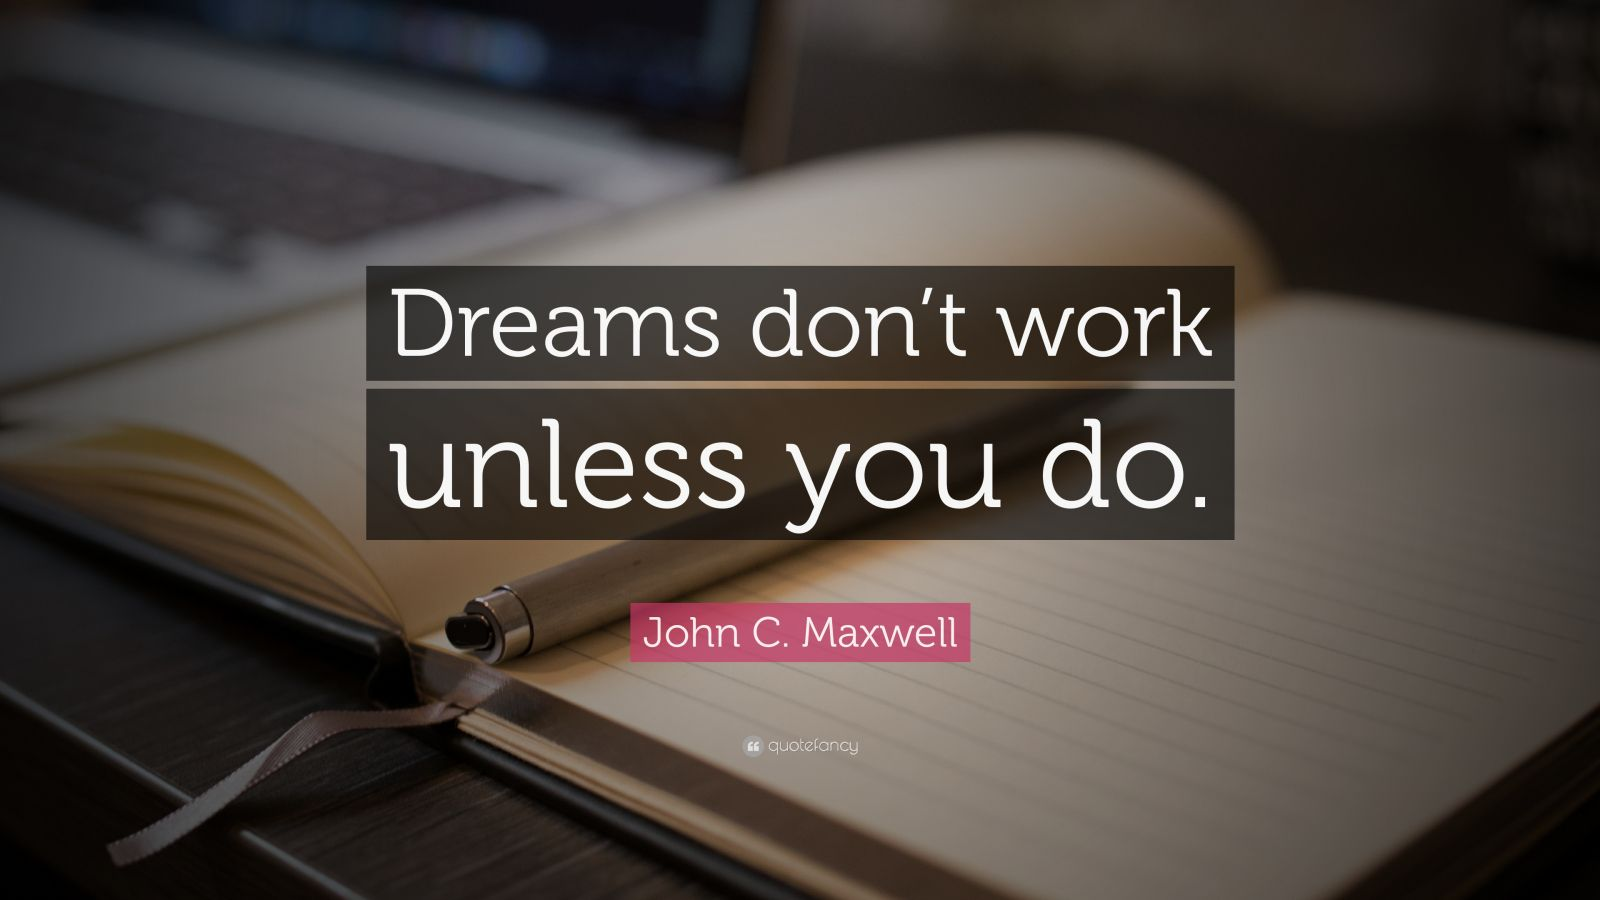 Motivational Life Quotes Wallpapers John C Maxwell Quote Dreams Don T Work Unless You Do